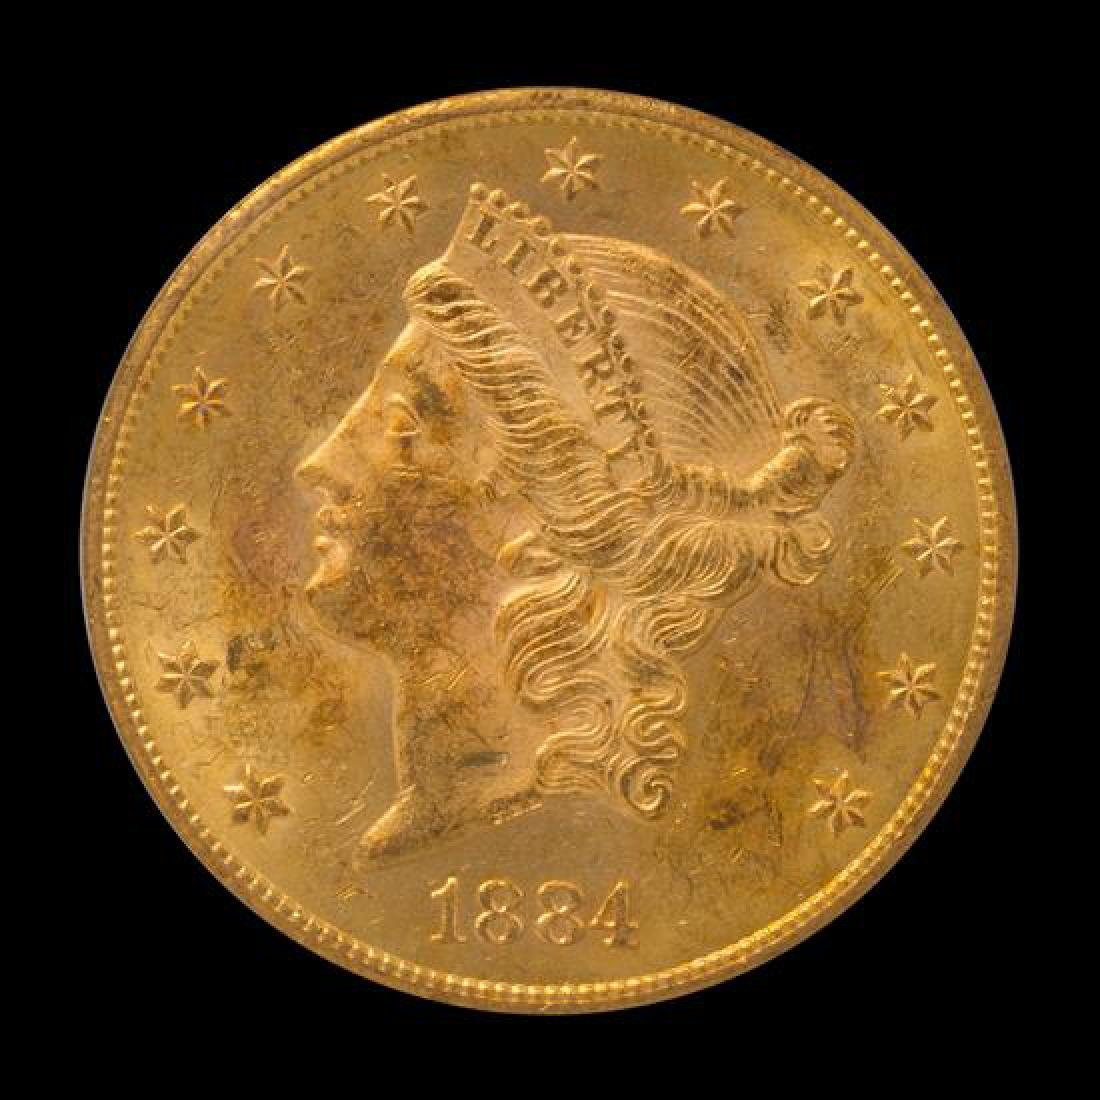 A United States 1884-CC Liberty Head $20 Gold Coin